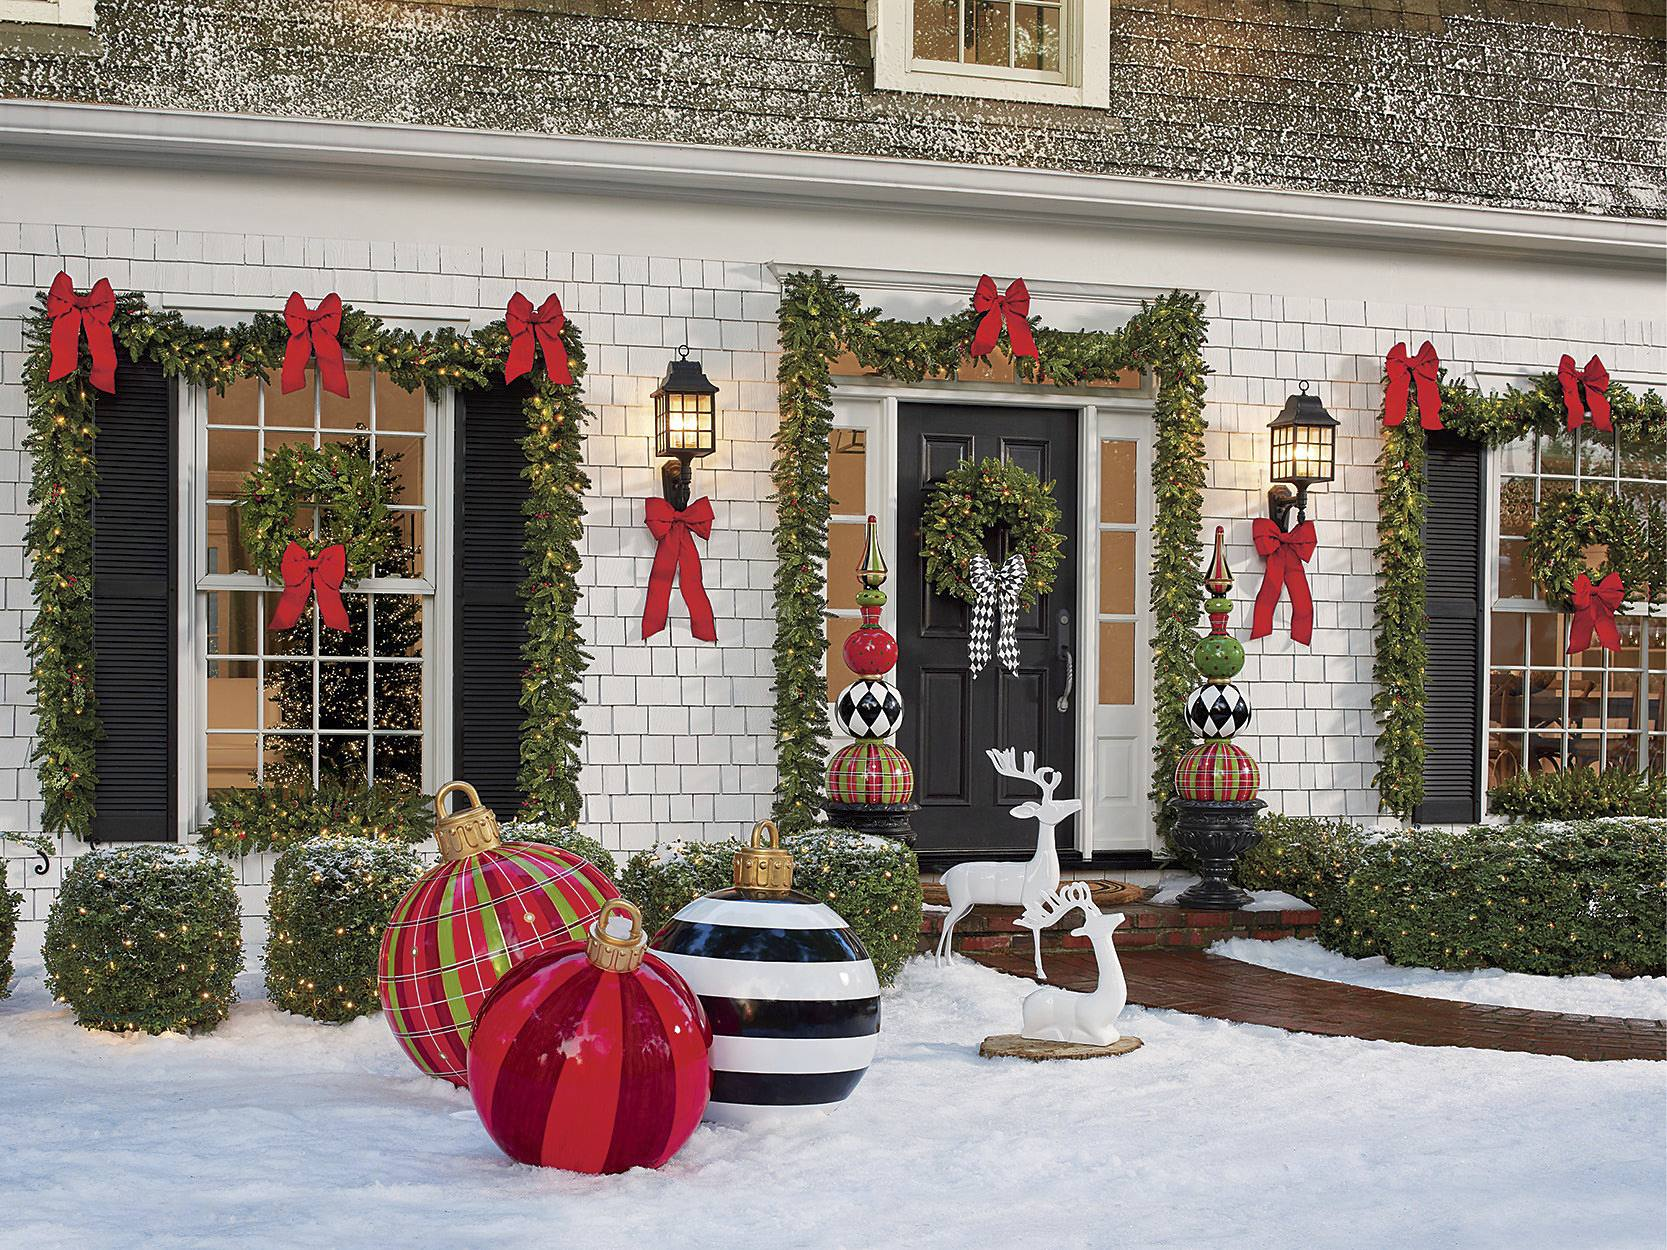 Battery Operated Garland Christmas Wreaths Lighted Decorations Love Lights Front Door Mats With